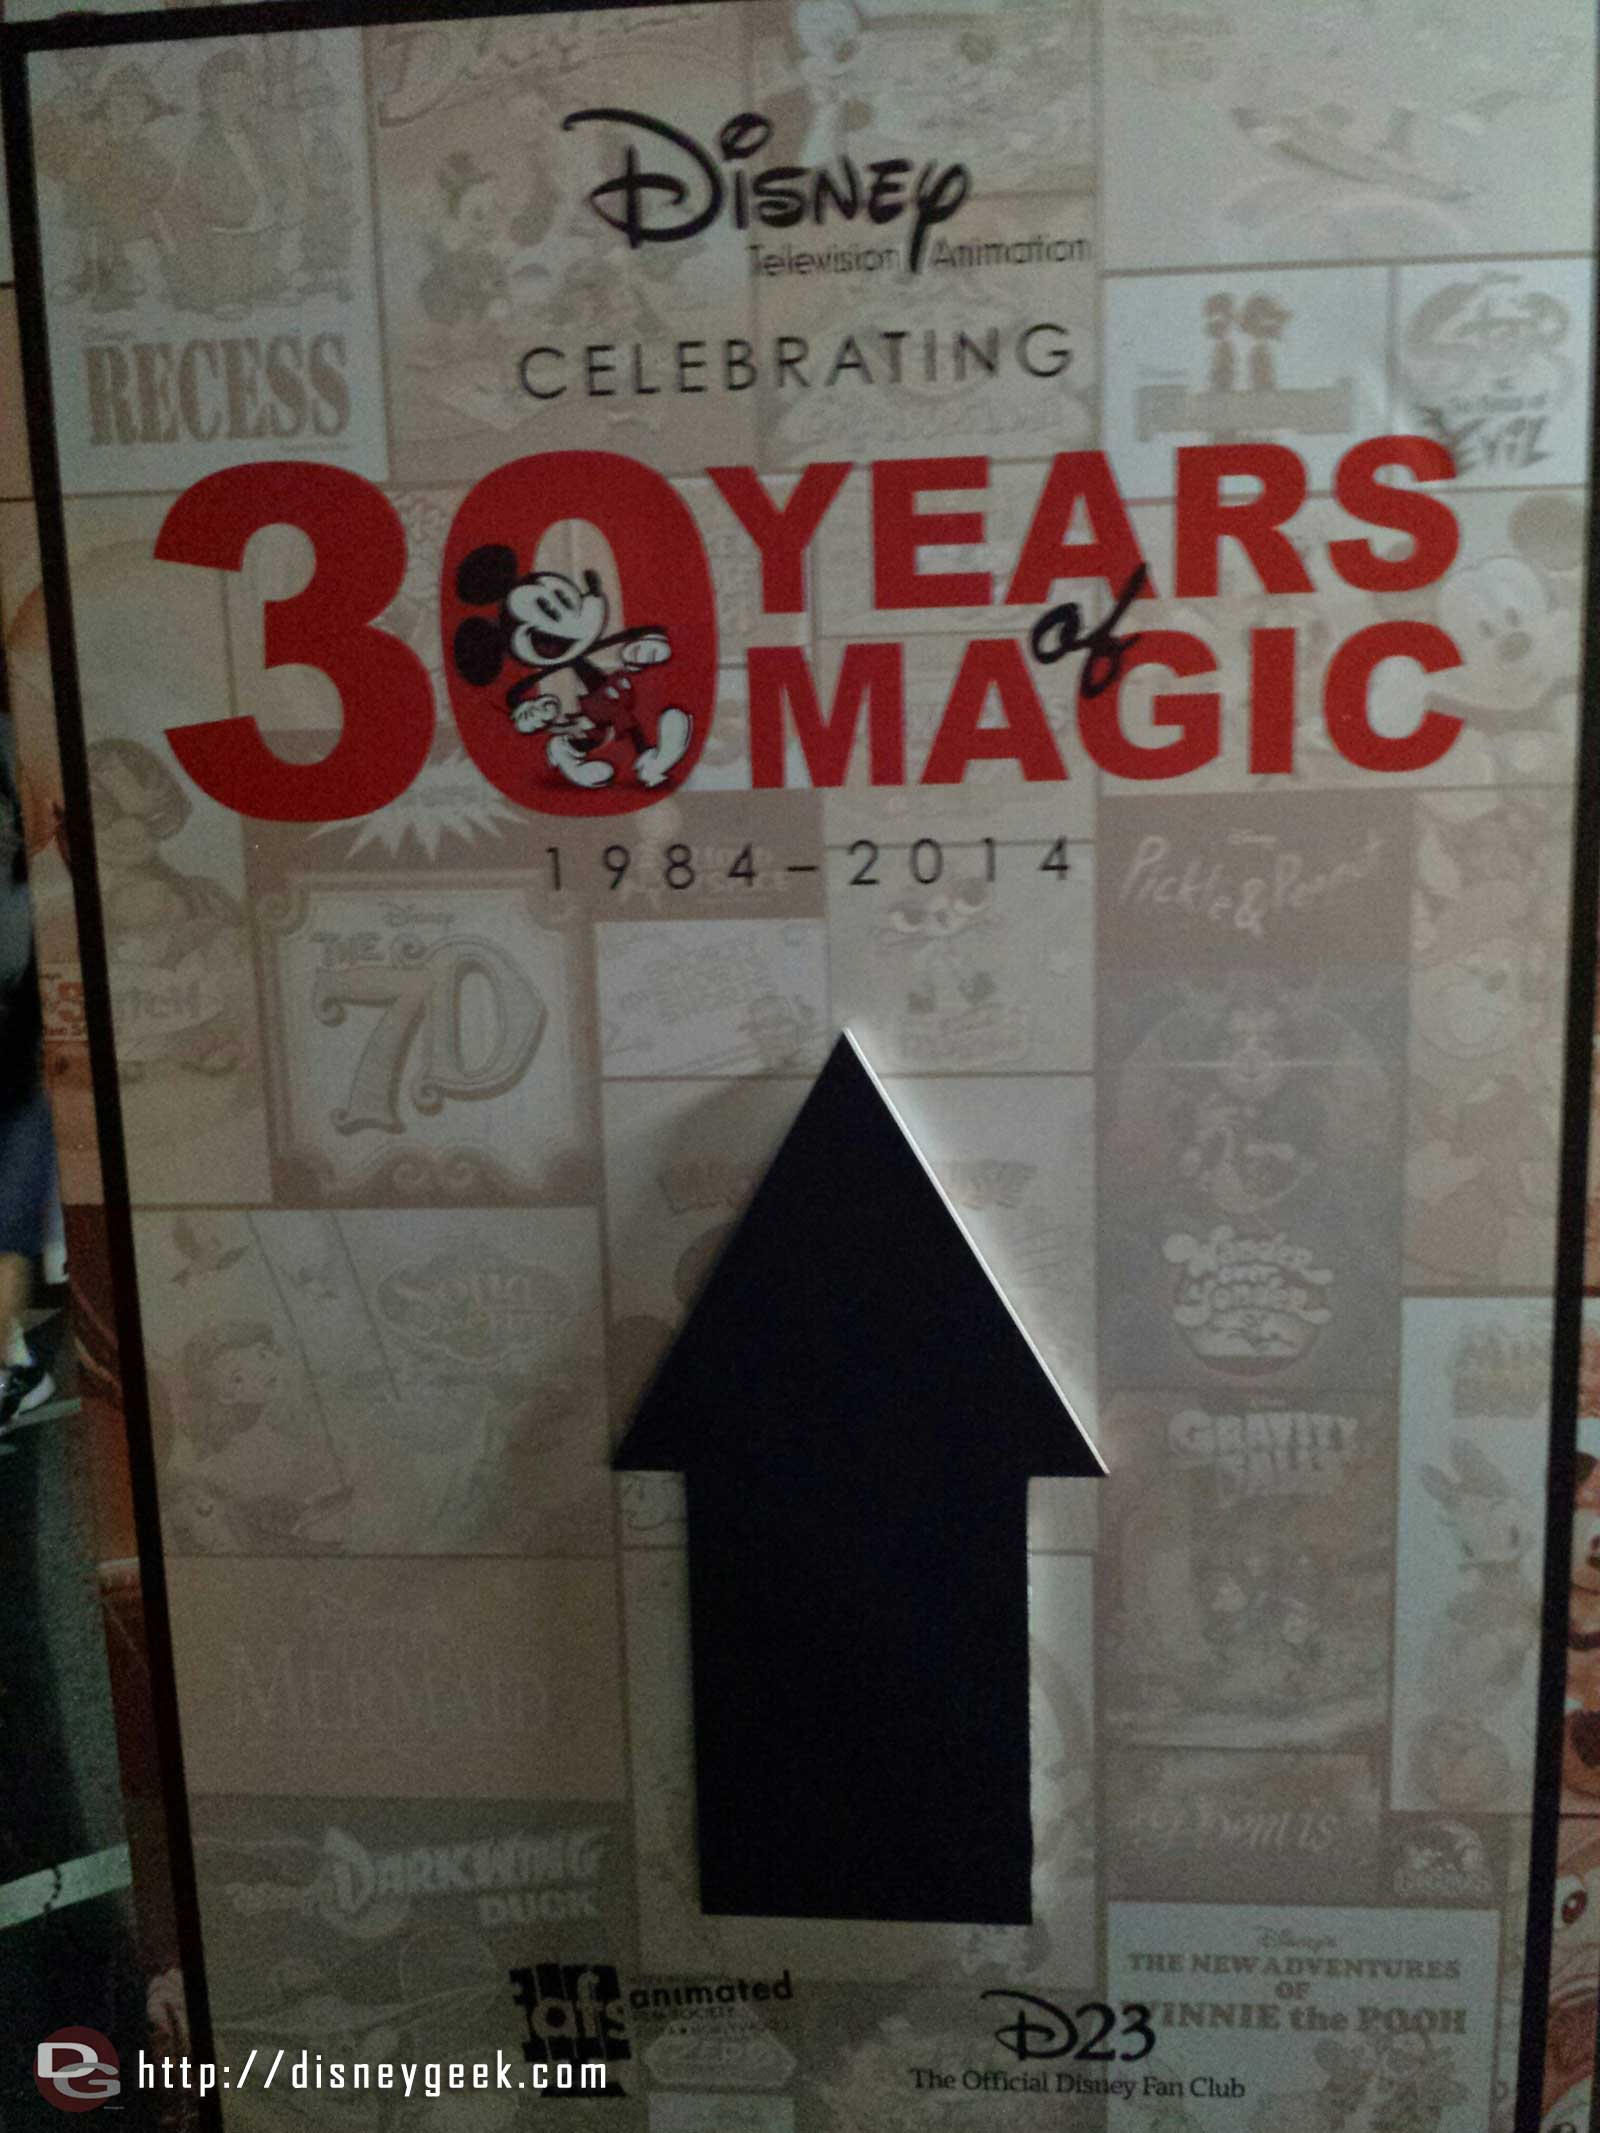 At the Disney Studios for the Disney Television Animation 30 Years of Magic event